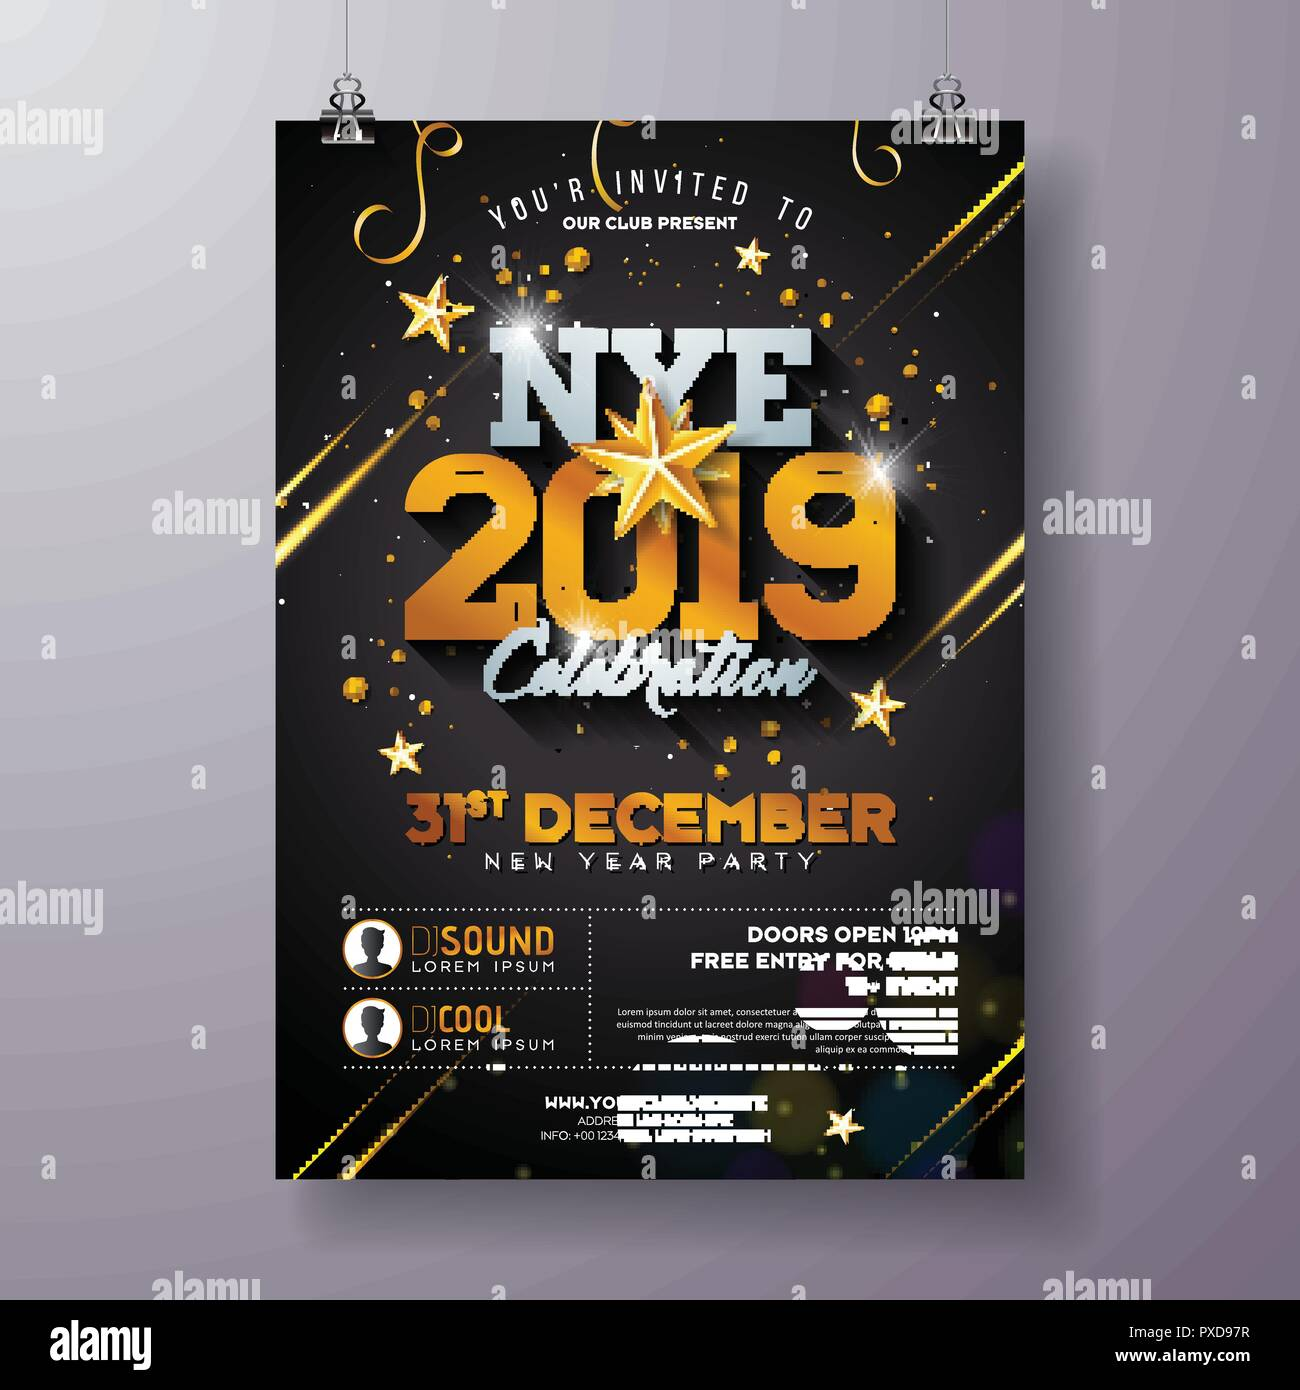 2019 New Year Party Celebration Poster Template Illustration With